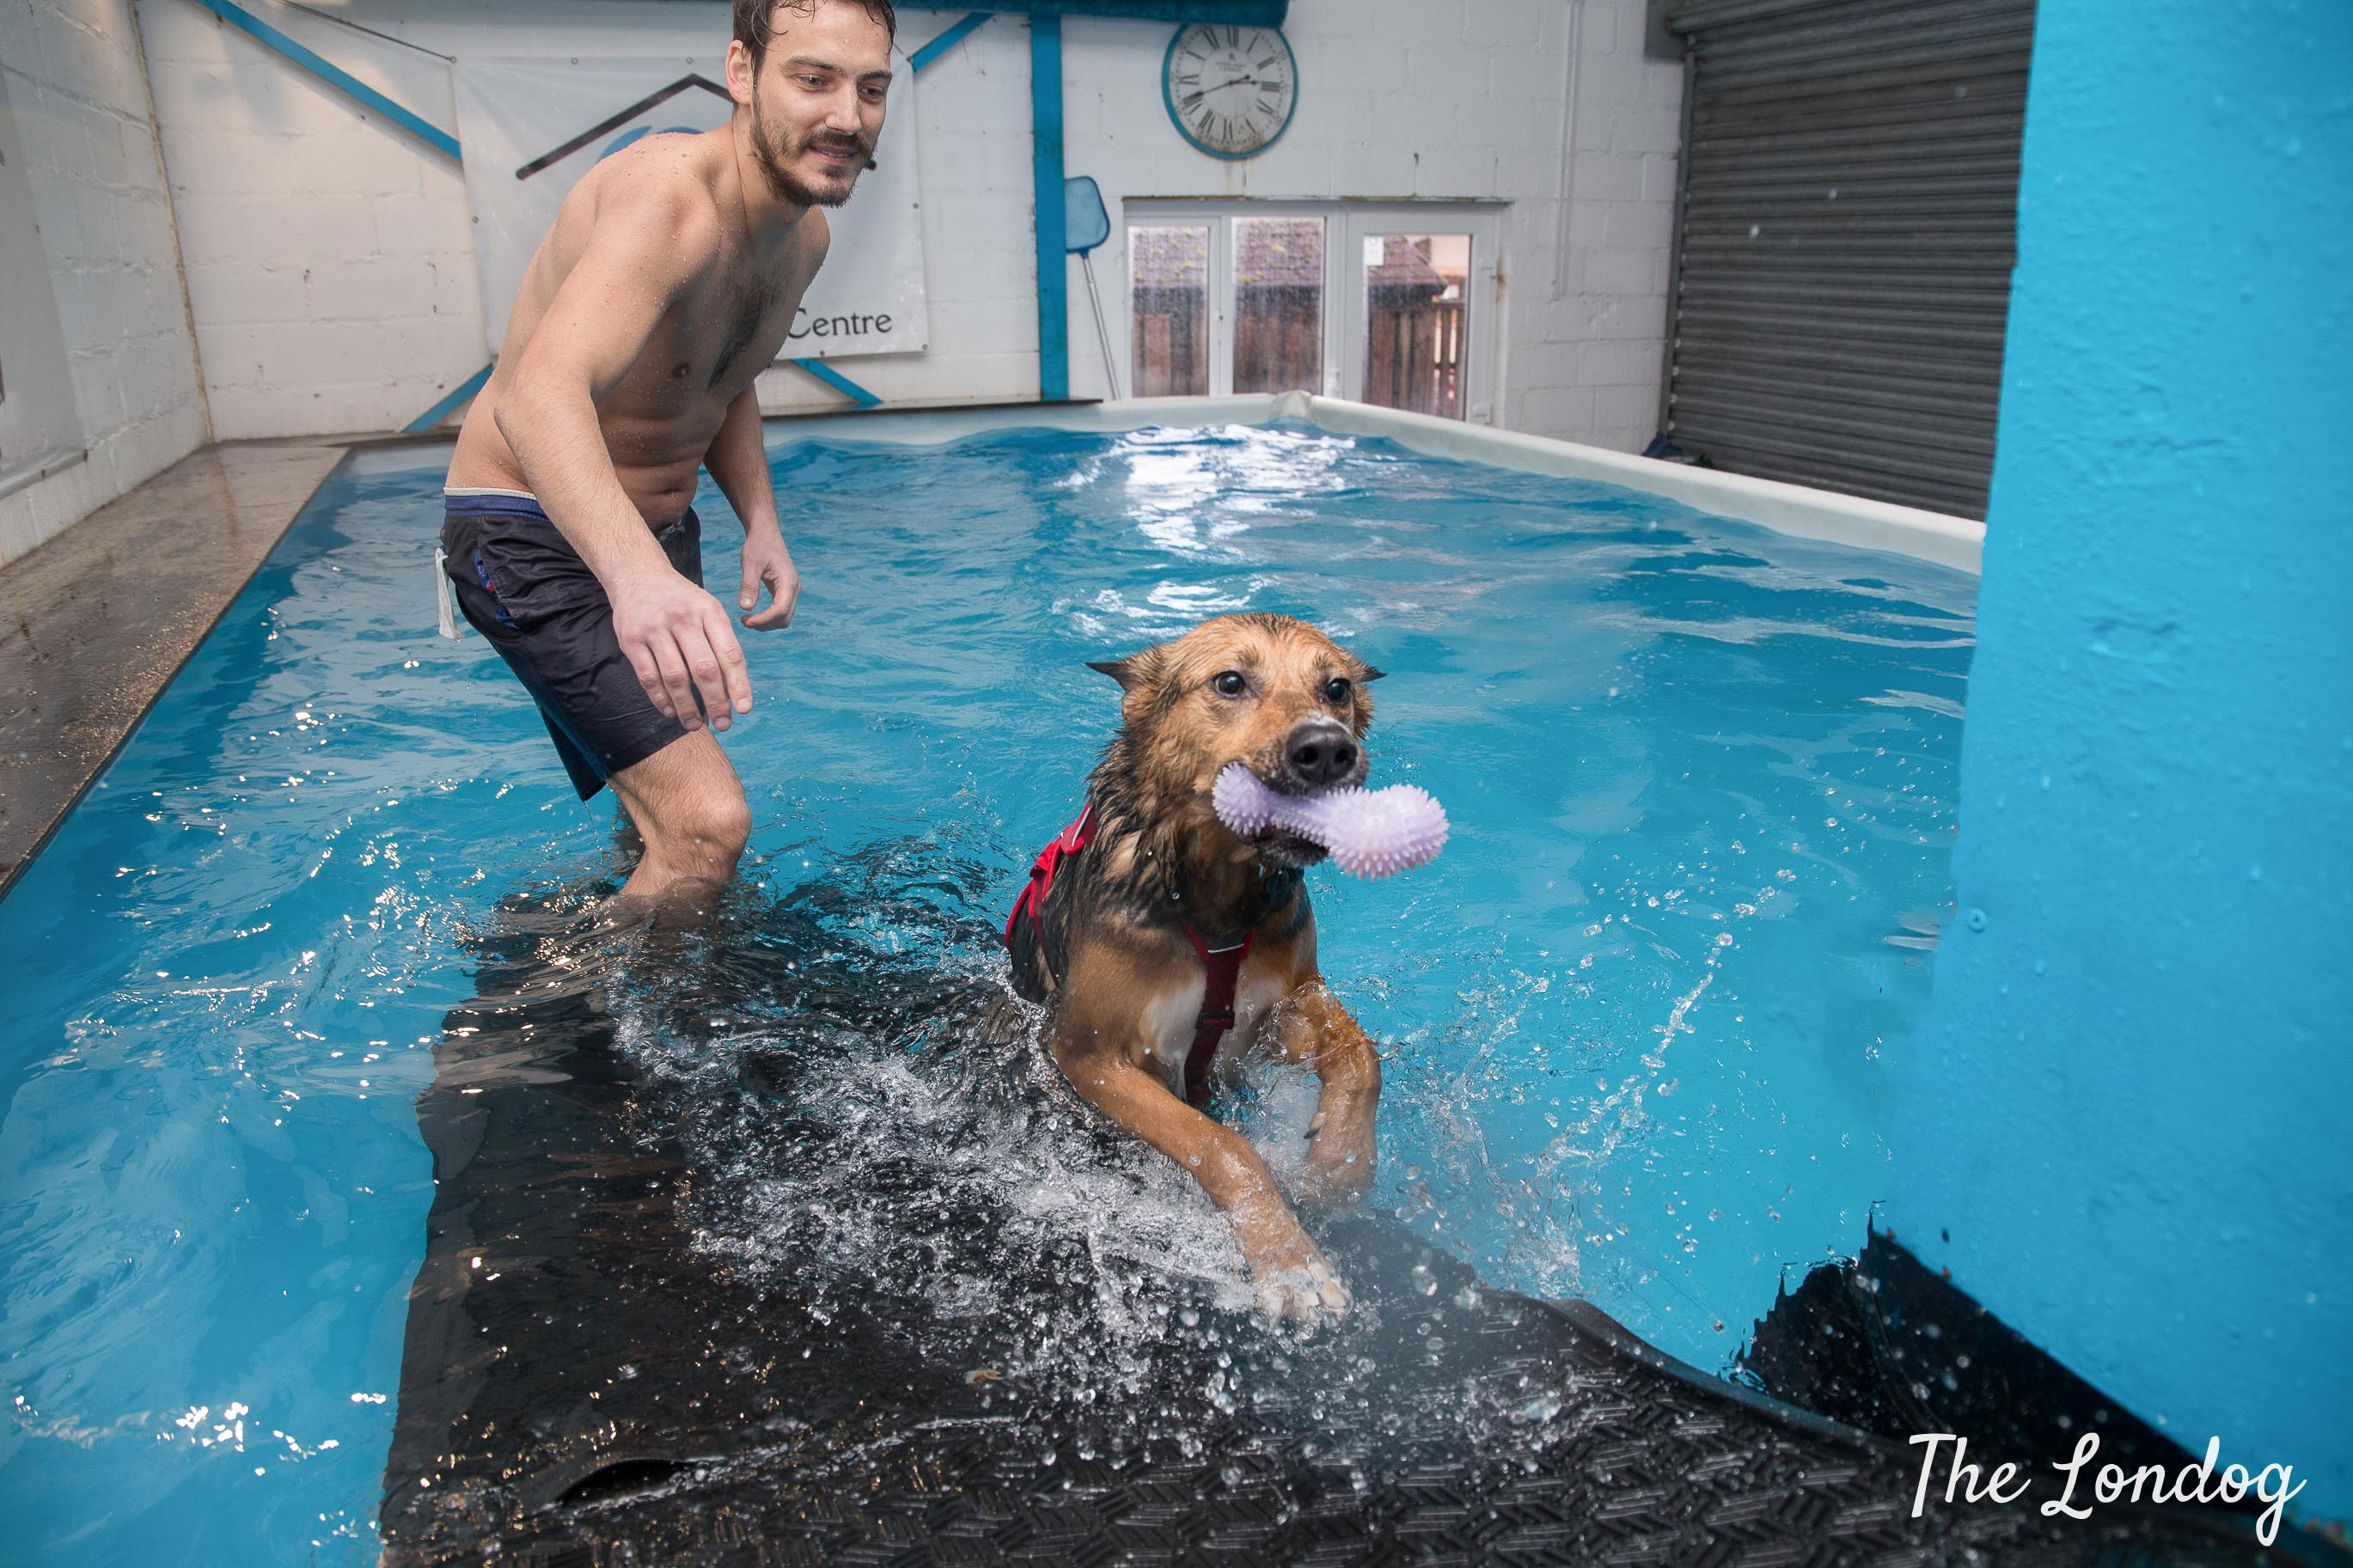 A Guide To Dog Friendly Indoor Swimming Pools Around London The Londog